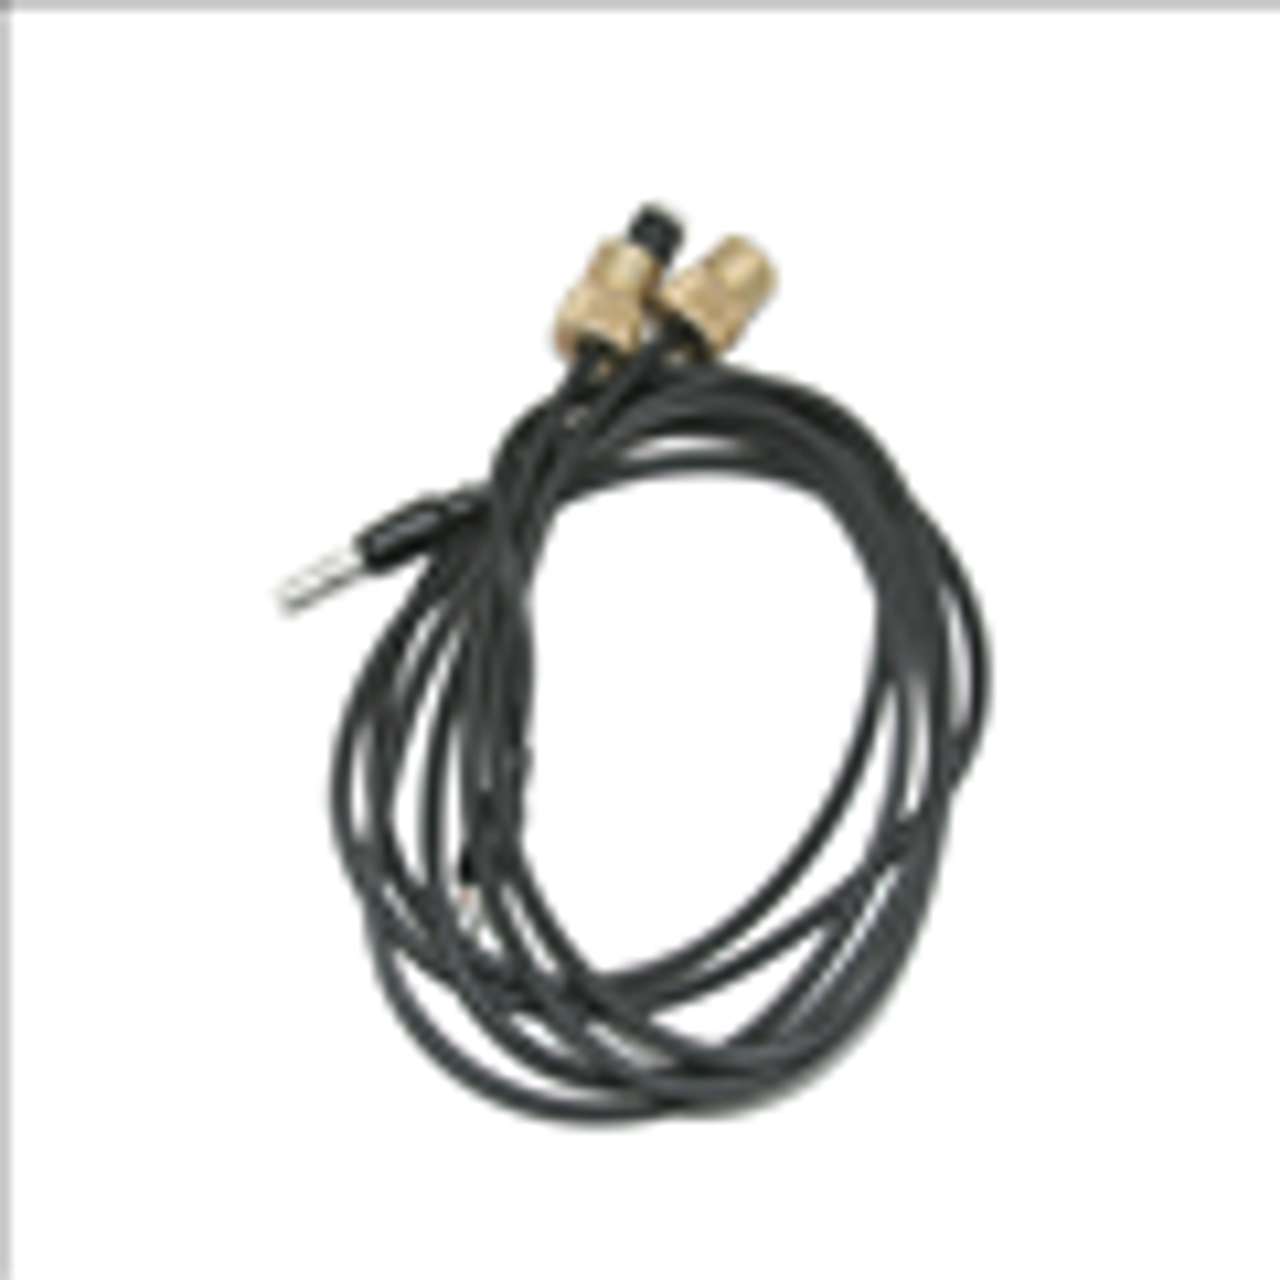 turn signal indicator wires 1970-1971 b body that require a 32